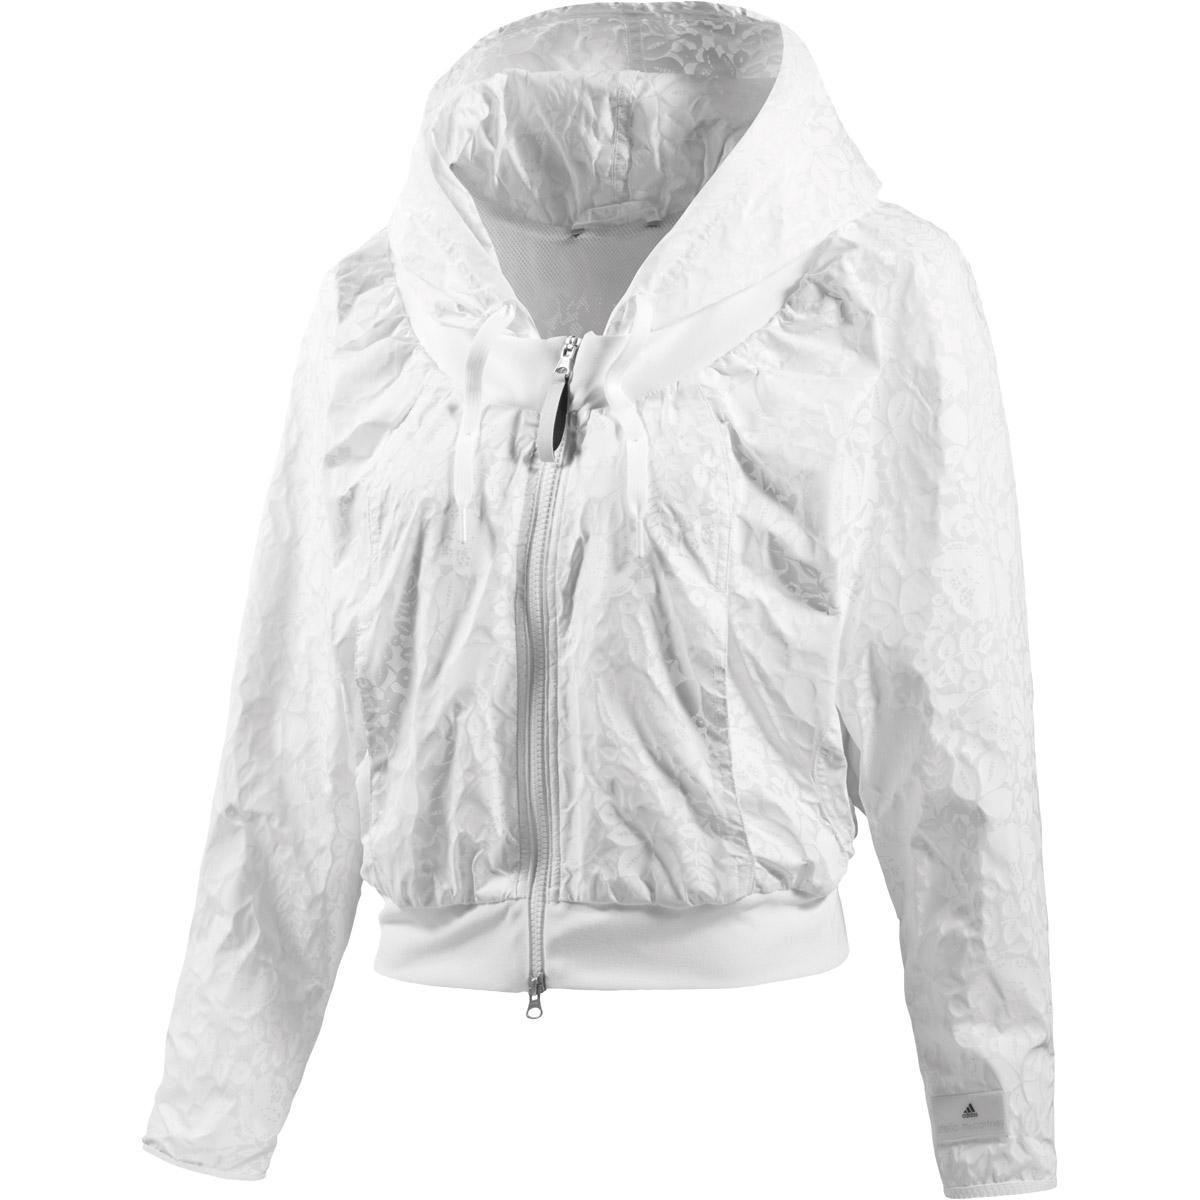 e2f581393409 Adidas Womens Stella McCartney Barricade Jacket - White - Tennisnuts.com